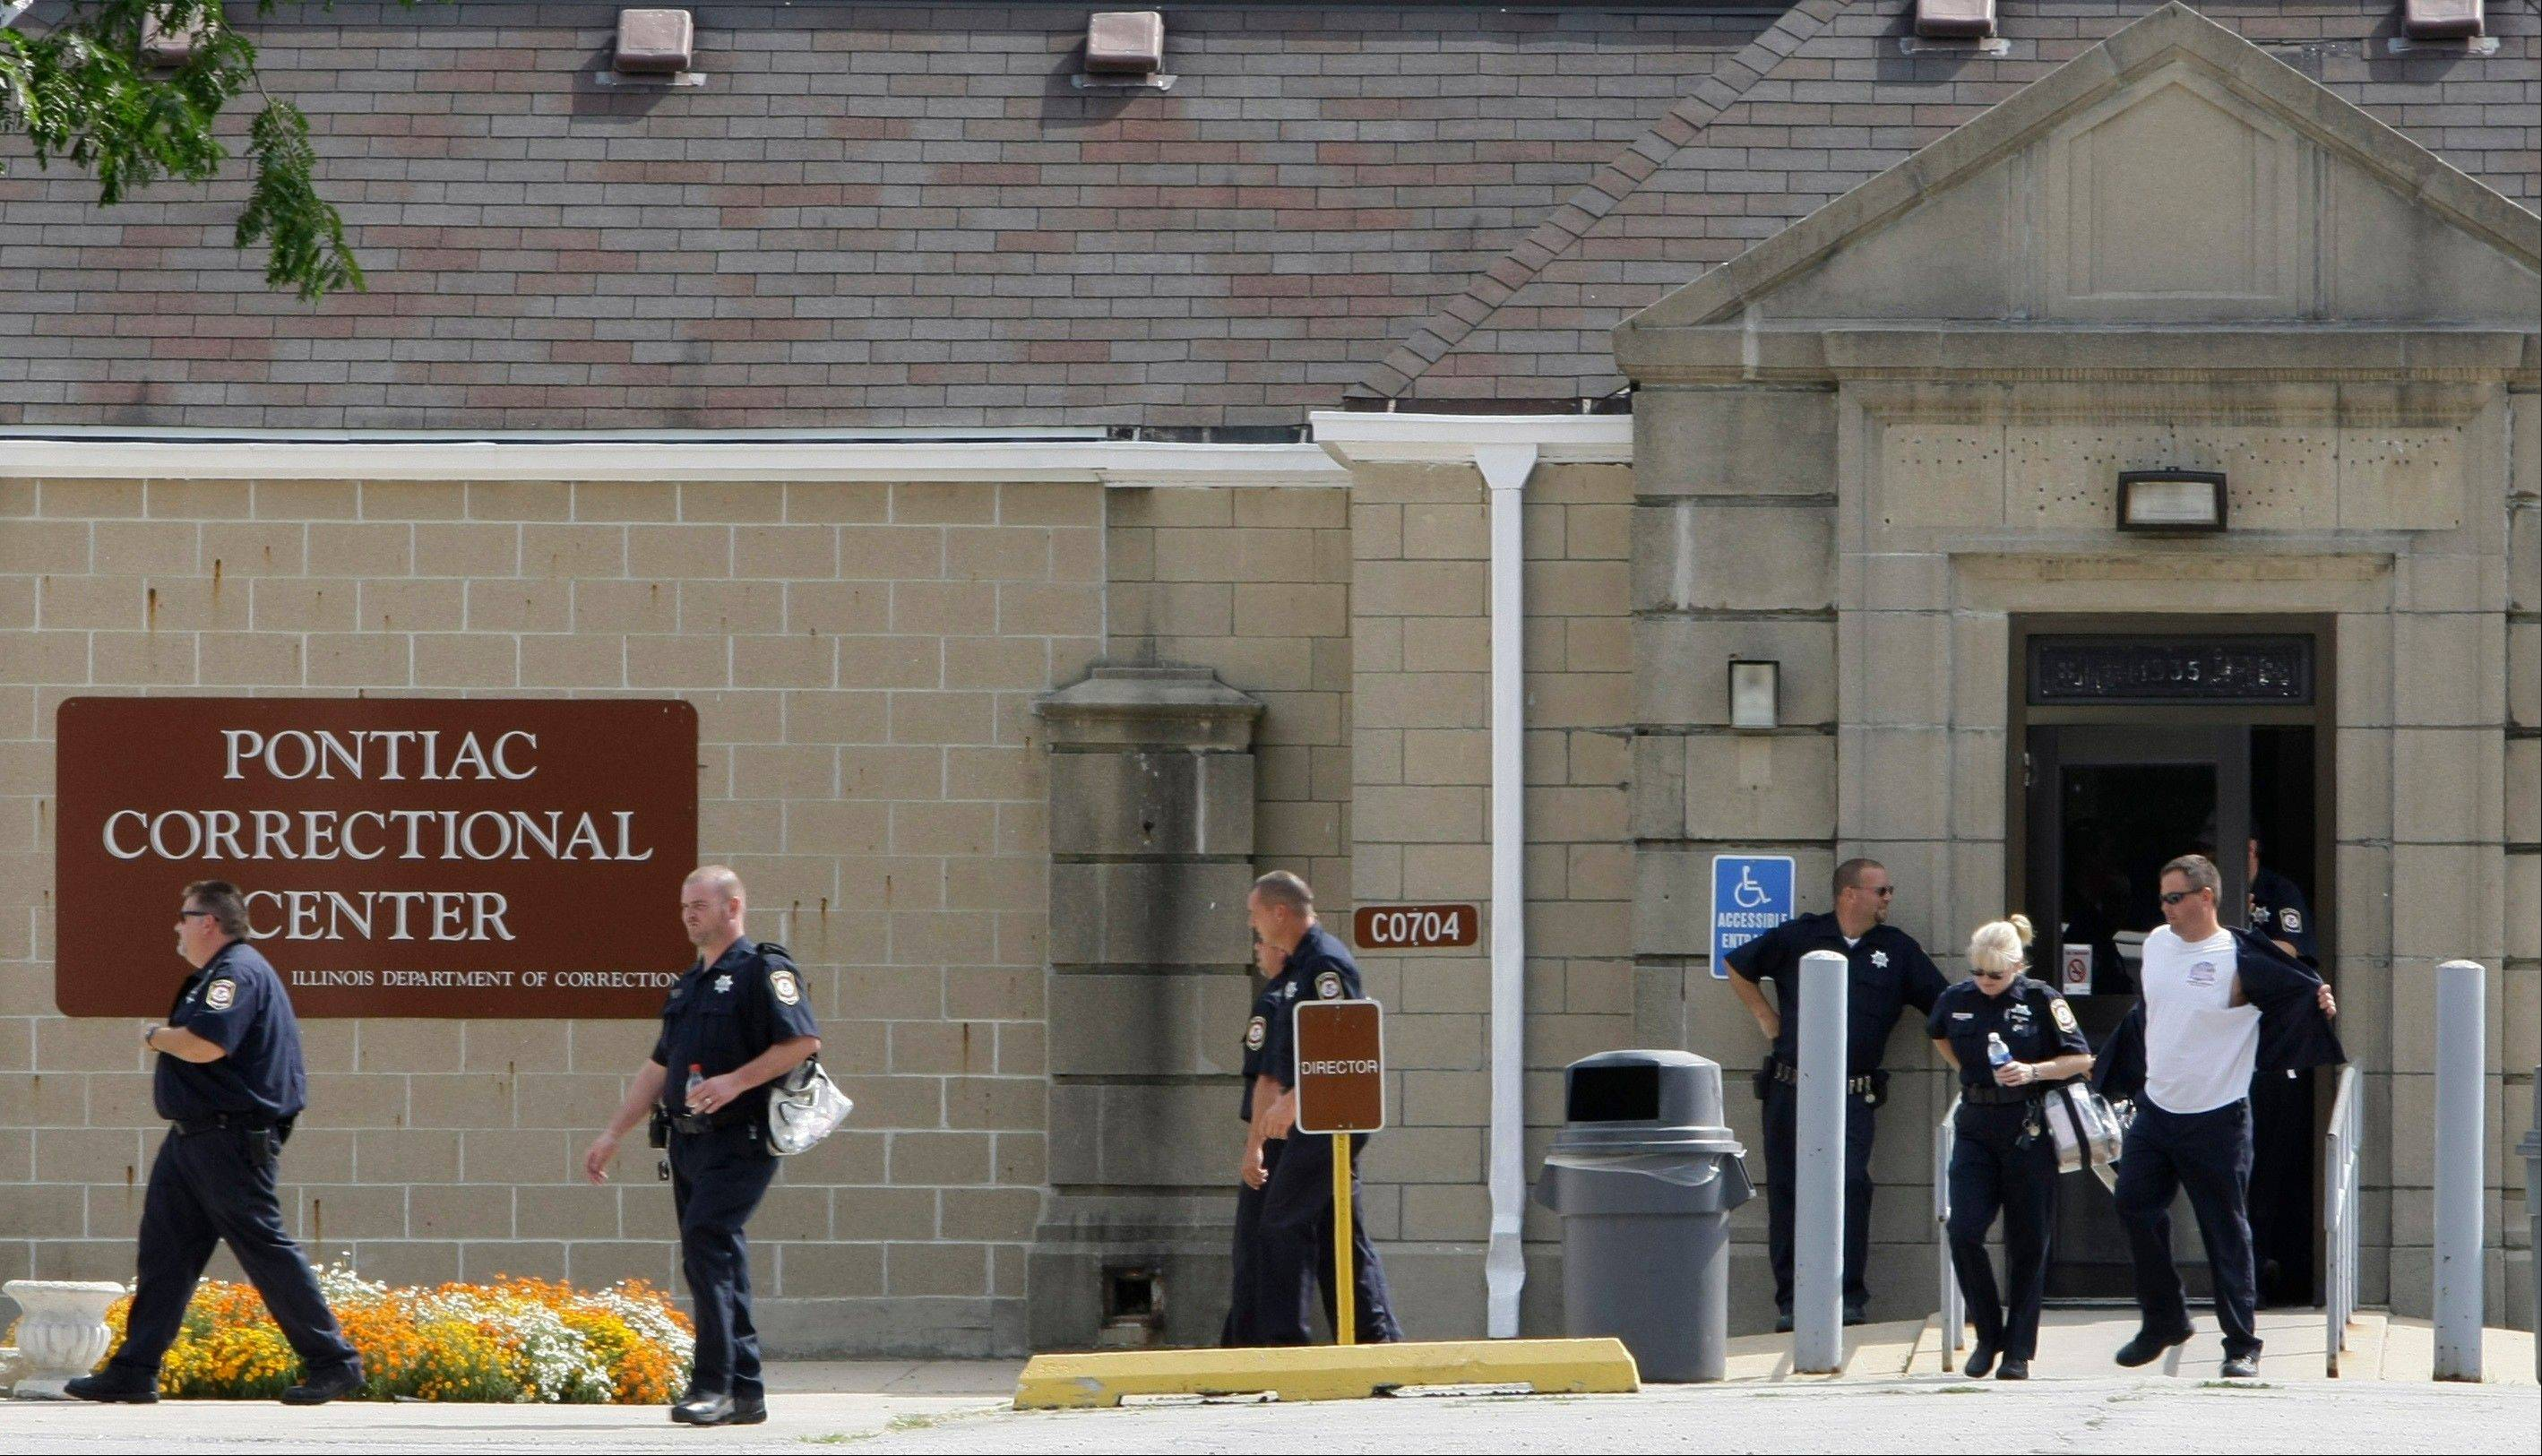 Corrections officers leave the downstate Pontiac Correctional Center during a shift change in 2008.